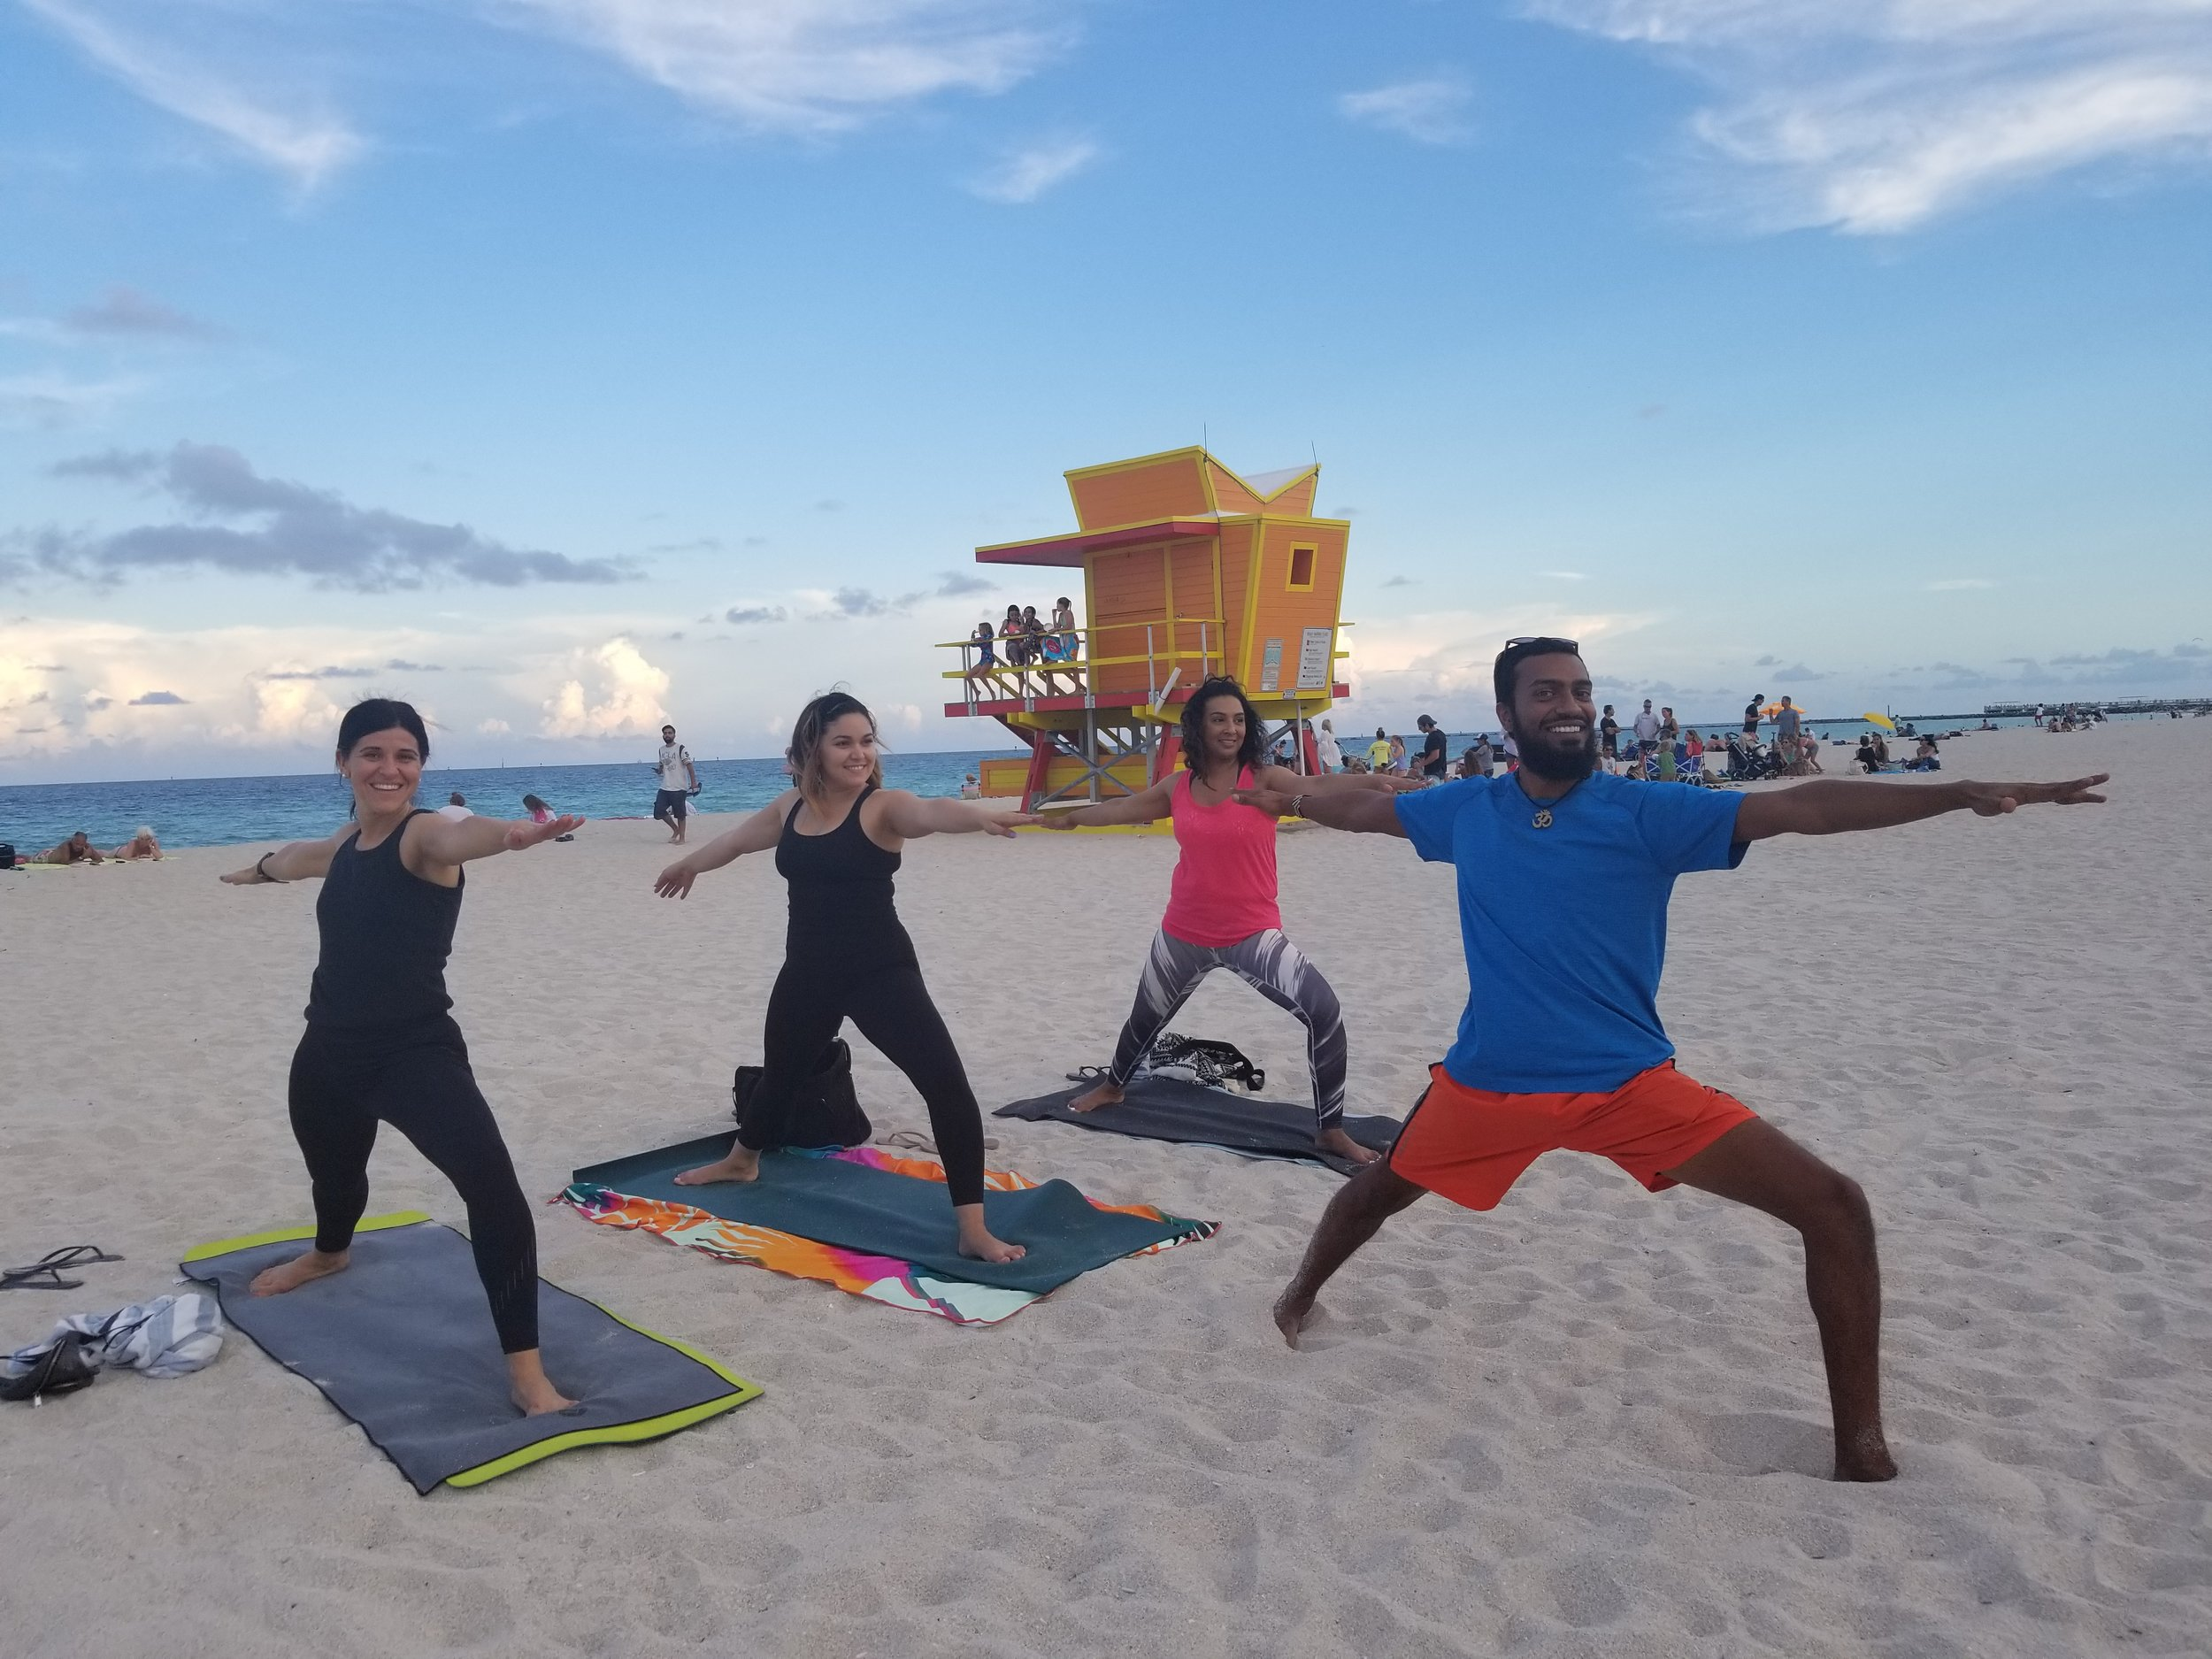 Yoga on South Beach - by donation, every day at 7 am and 5 pm (switches when the time changes)